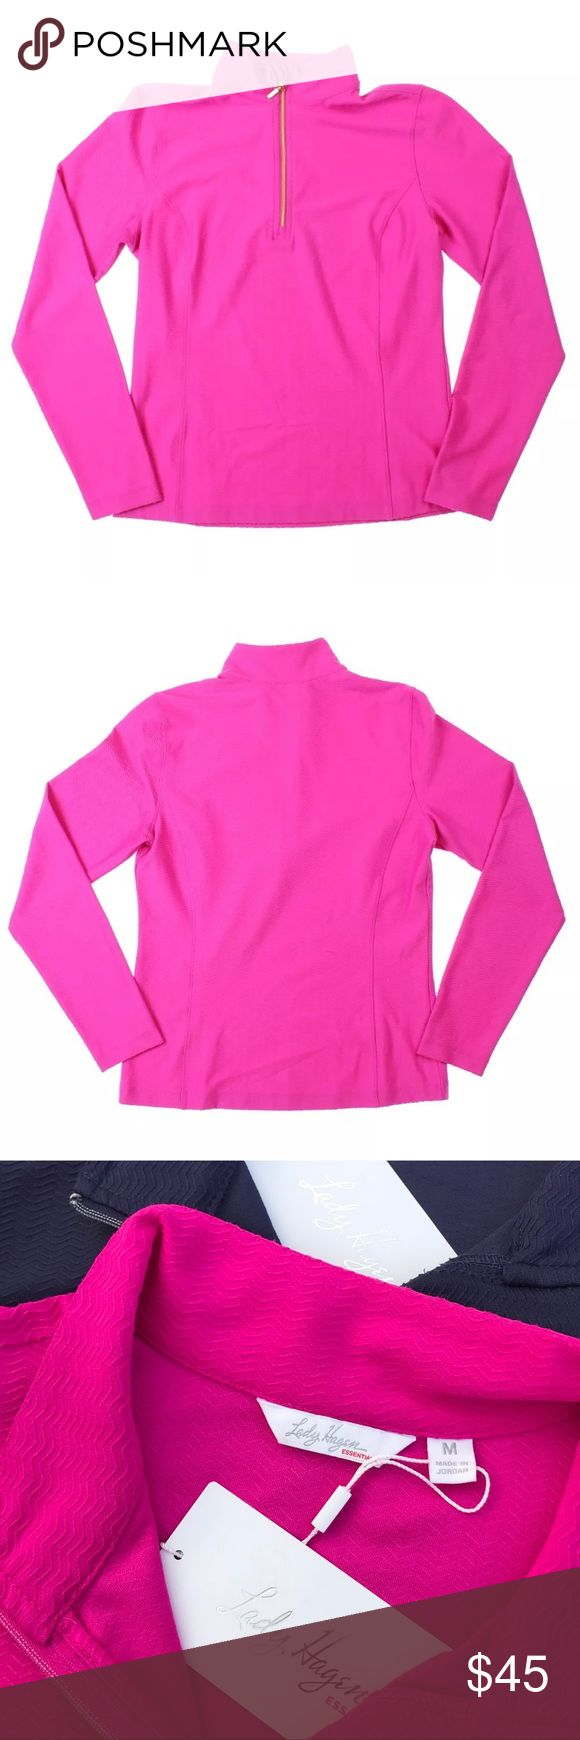 Lady Hagen quarter zip up long sleeve shirt Listing is for Lady Hagen quarter zip long sleeve shirt. Color is pink berry. Has UV protection along with hydrodri fabric keeps you cool and dry by moving sweat away from your skin. I personally use these for working out and they are beyond amazing in wicking away moisture. Retail $50 each. Lady Hagen Tops Tees - Long Sleeve